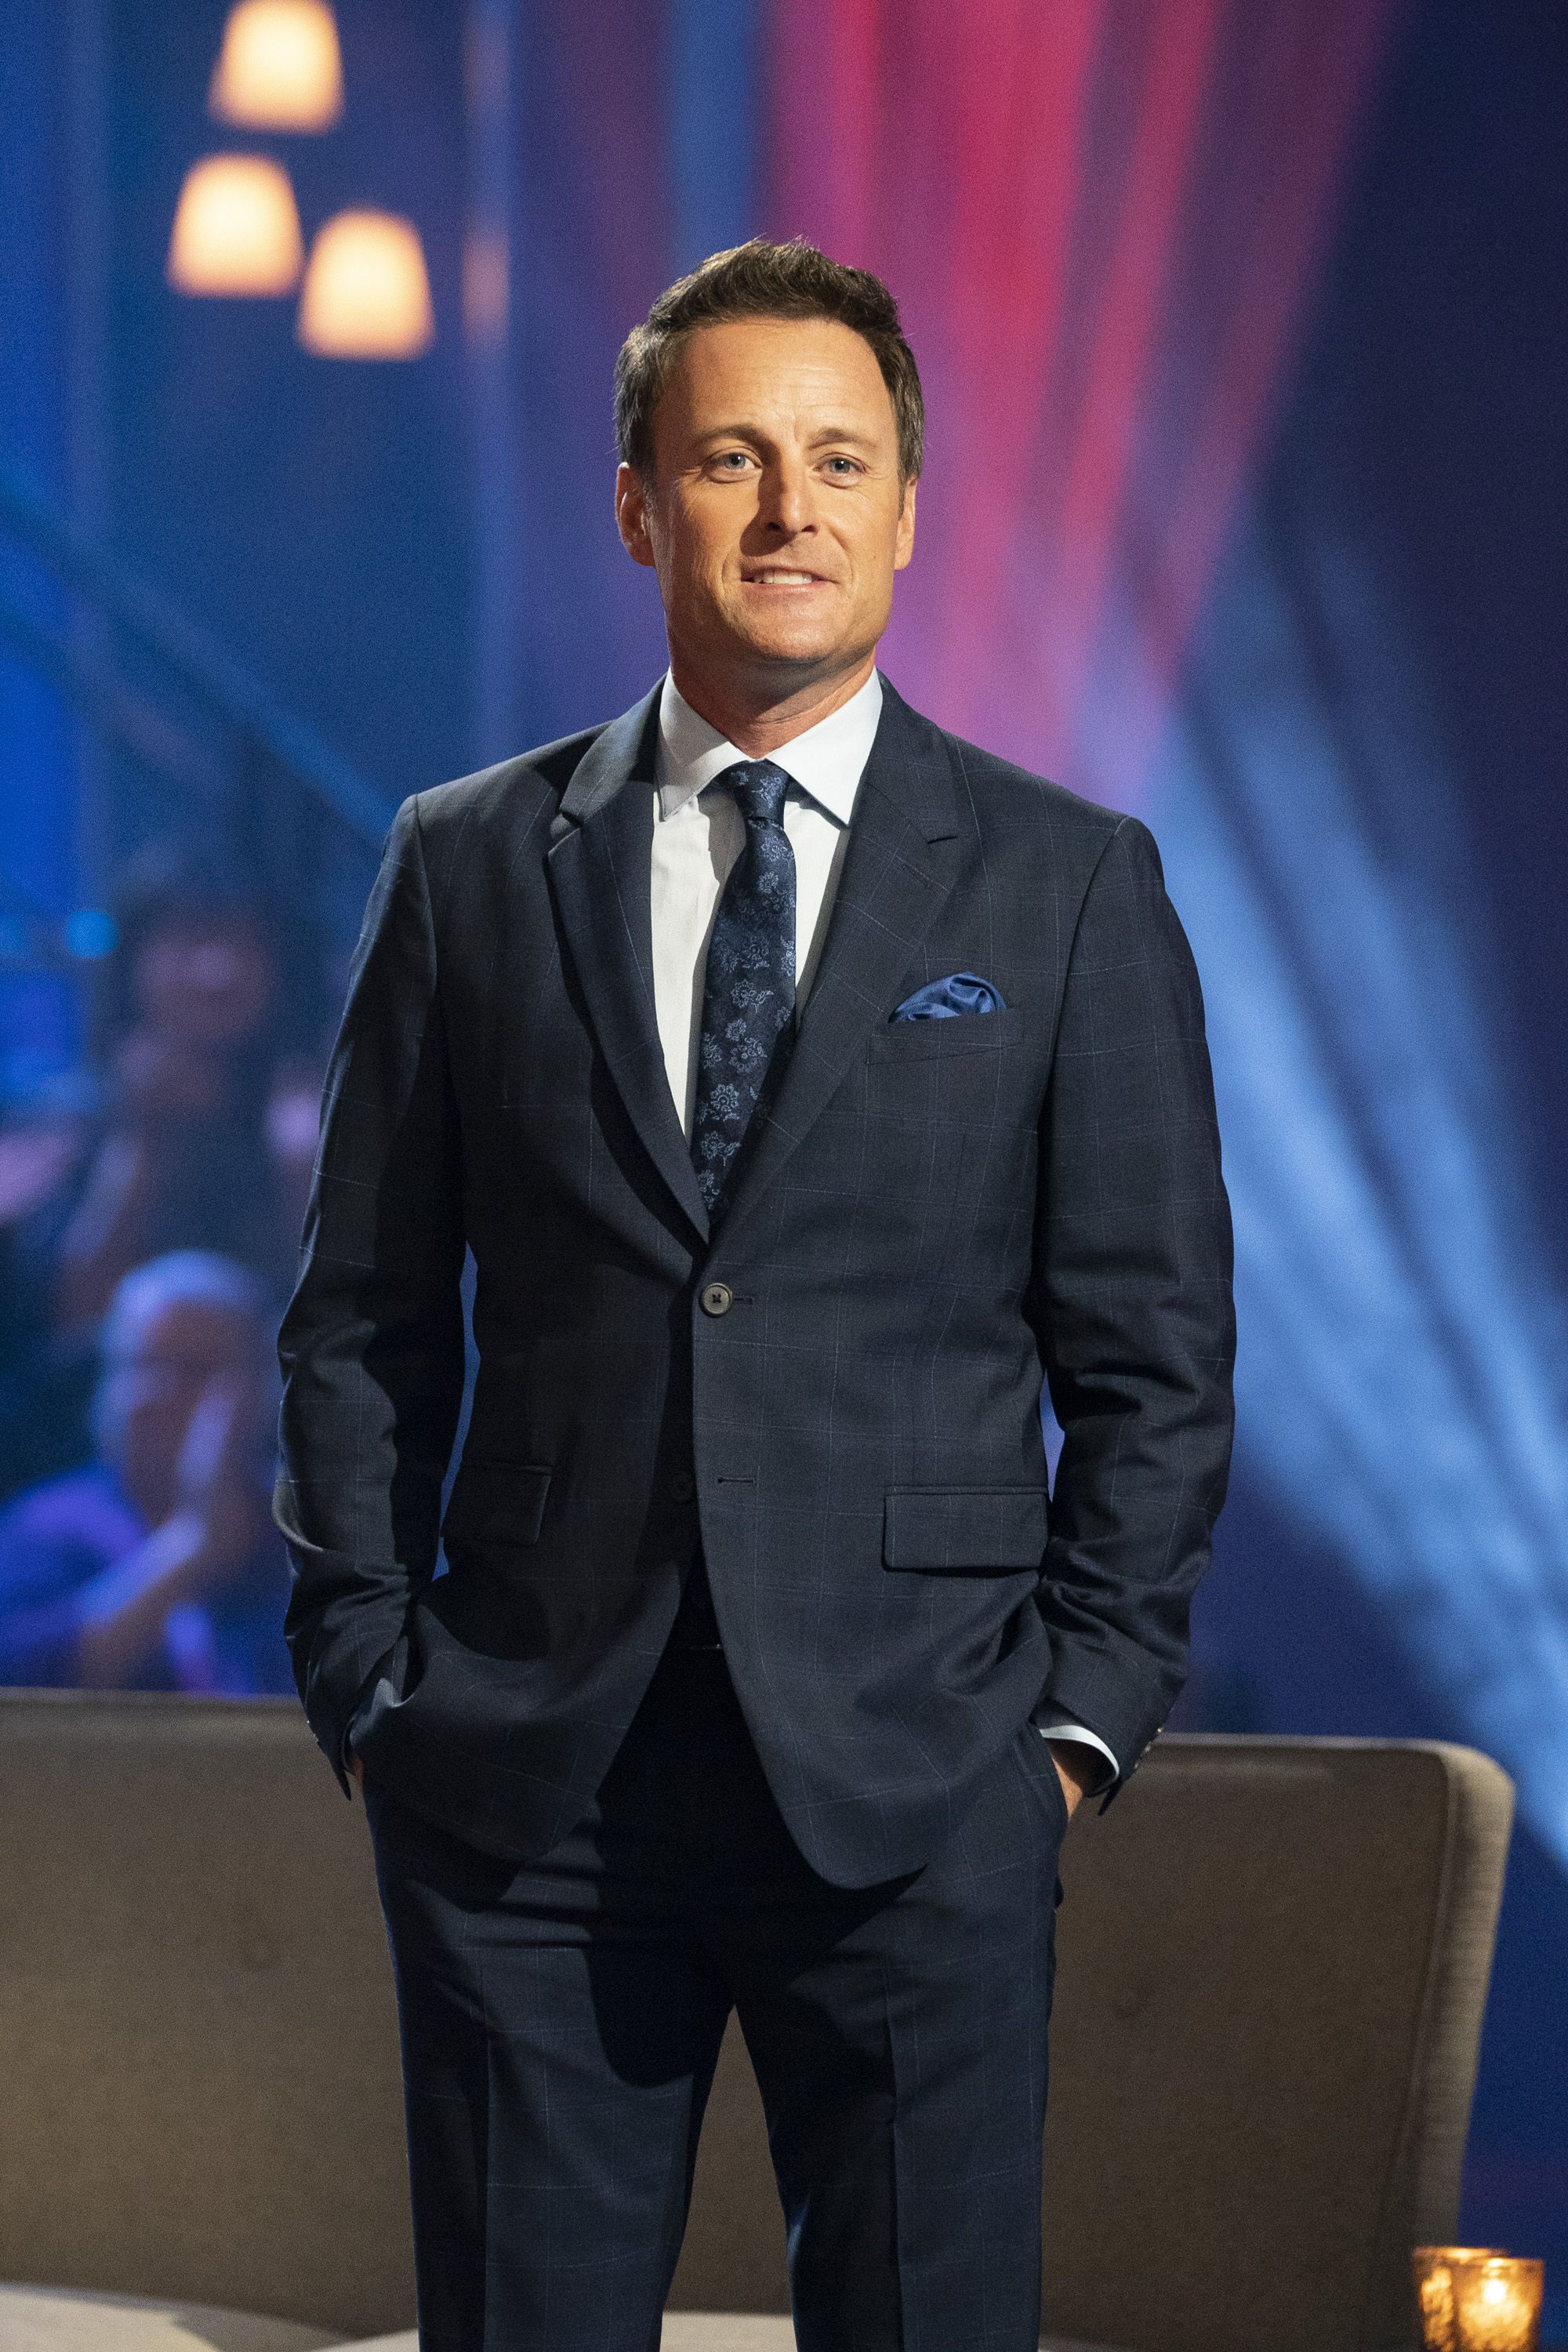 Chris Harrison Responds to Allegations Against 'Bachelor' Creator Mike Fleiss